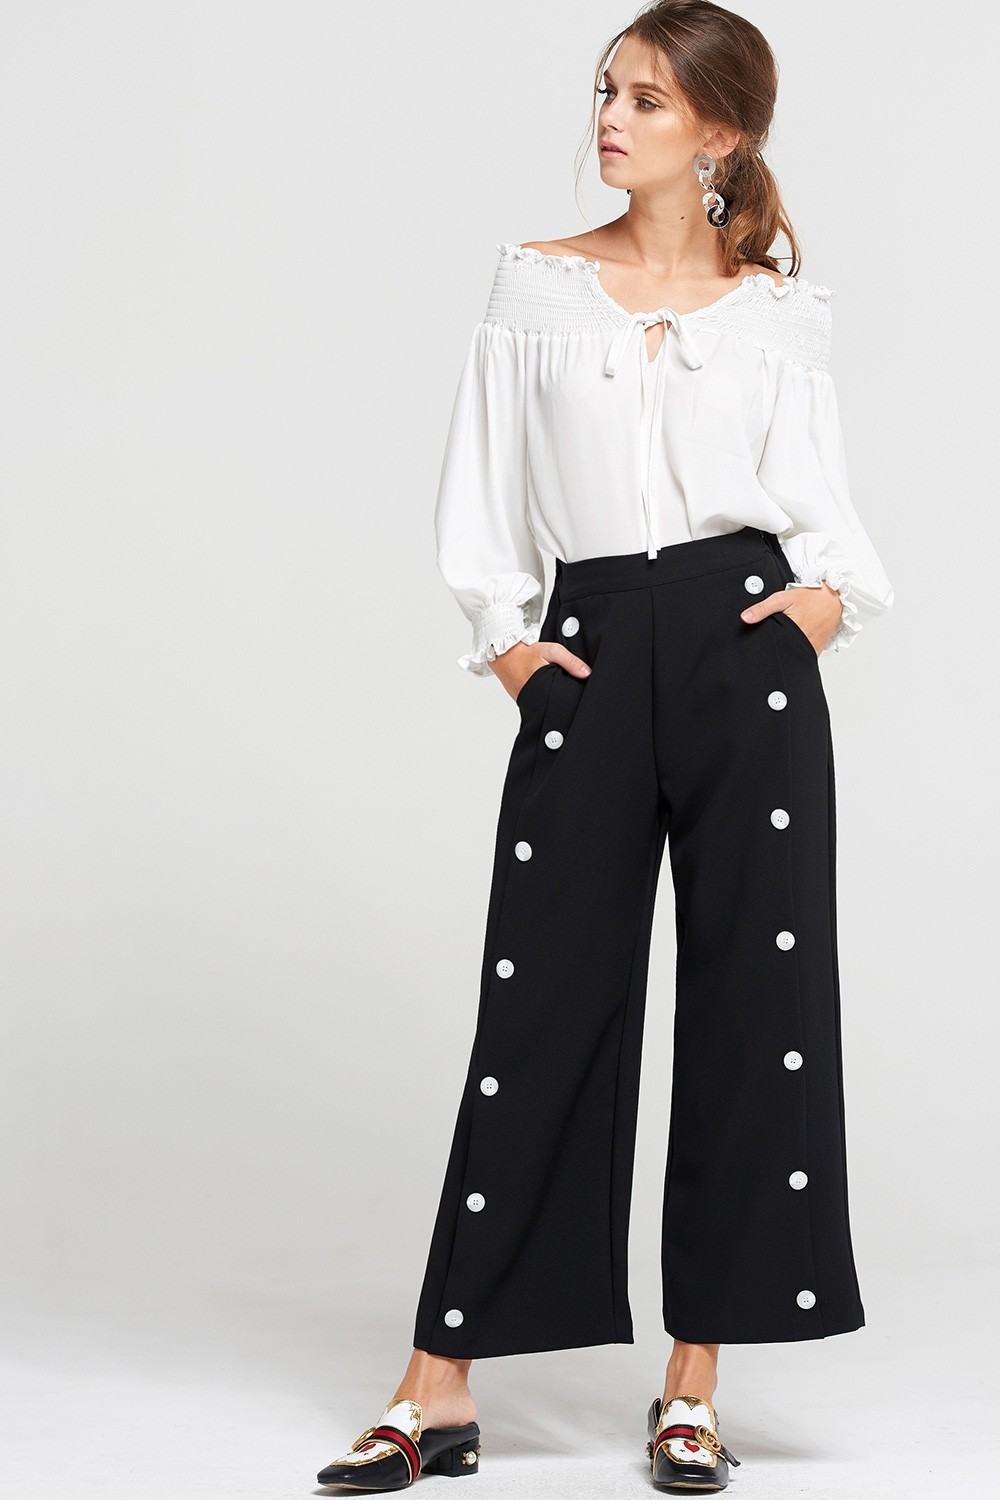 Estelle Front Button Pants Discover the latest fashion trends online at storets.com